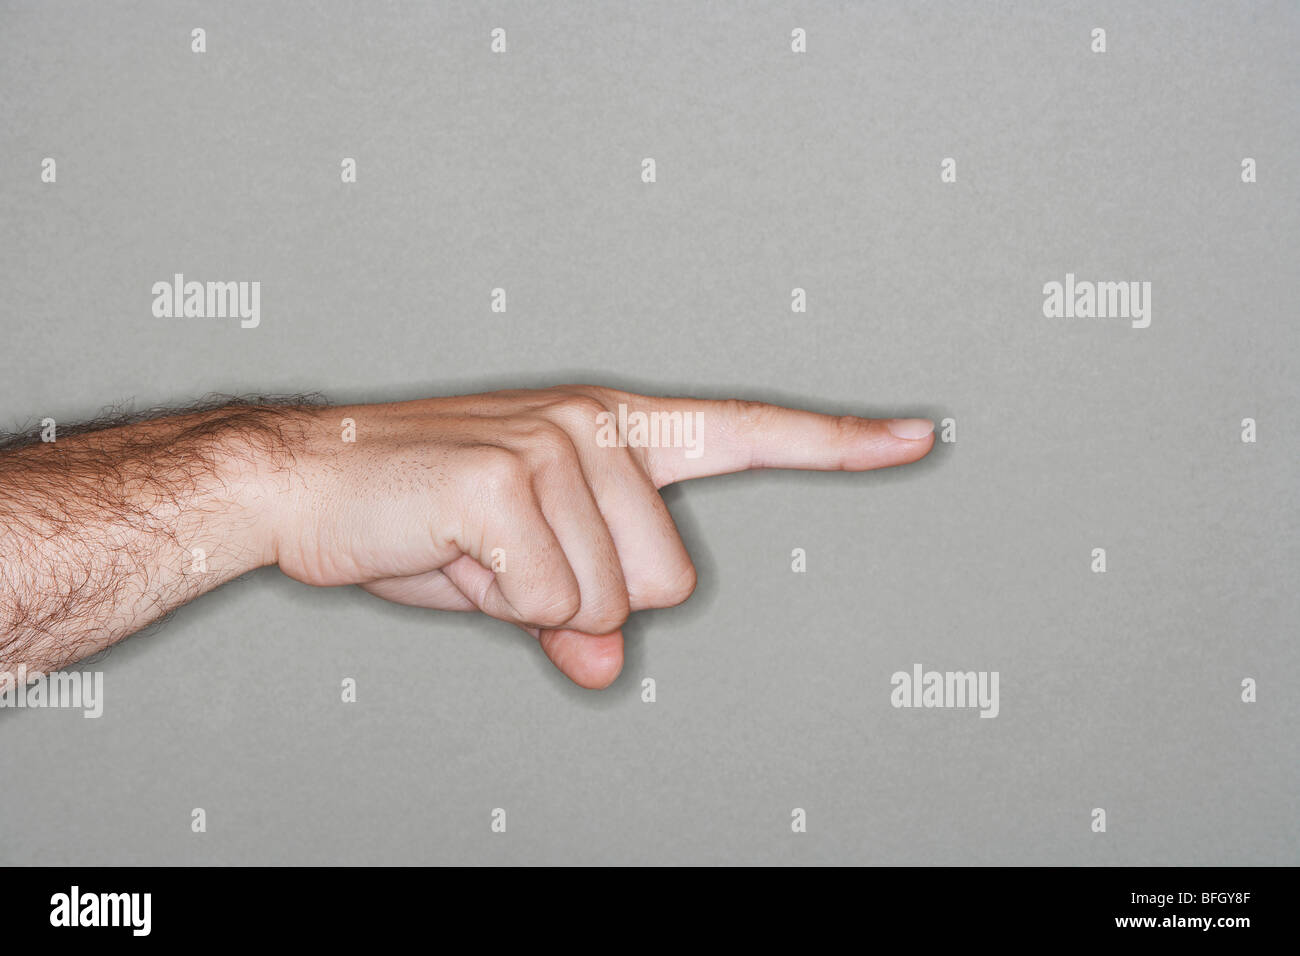 Man pointing with index finger, close-up of hand - Stock Image